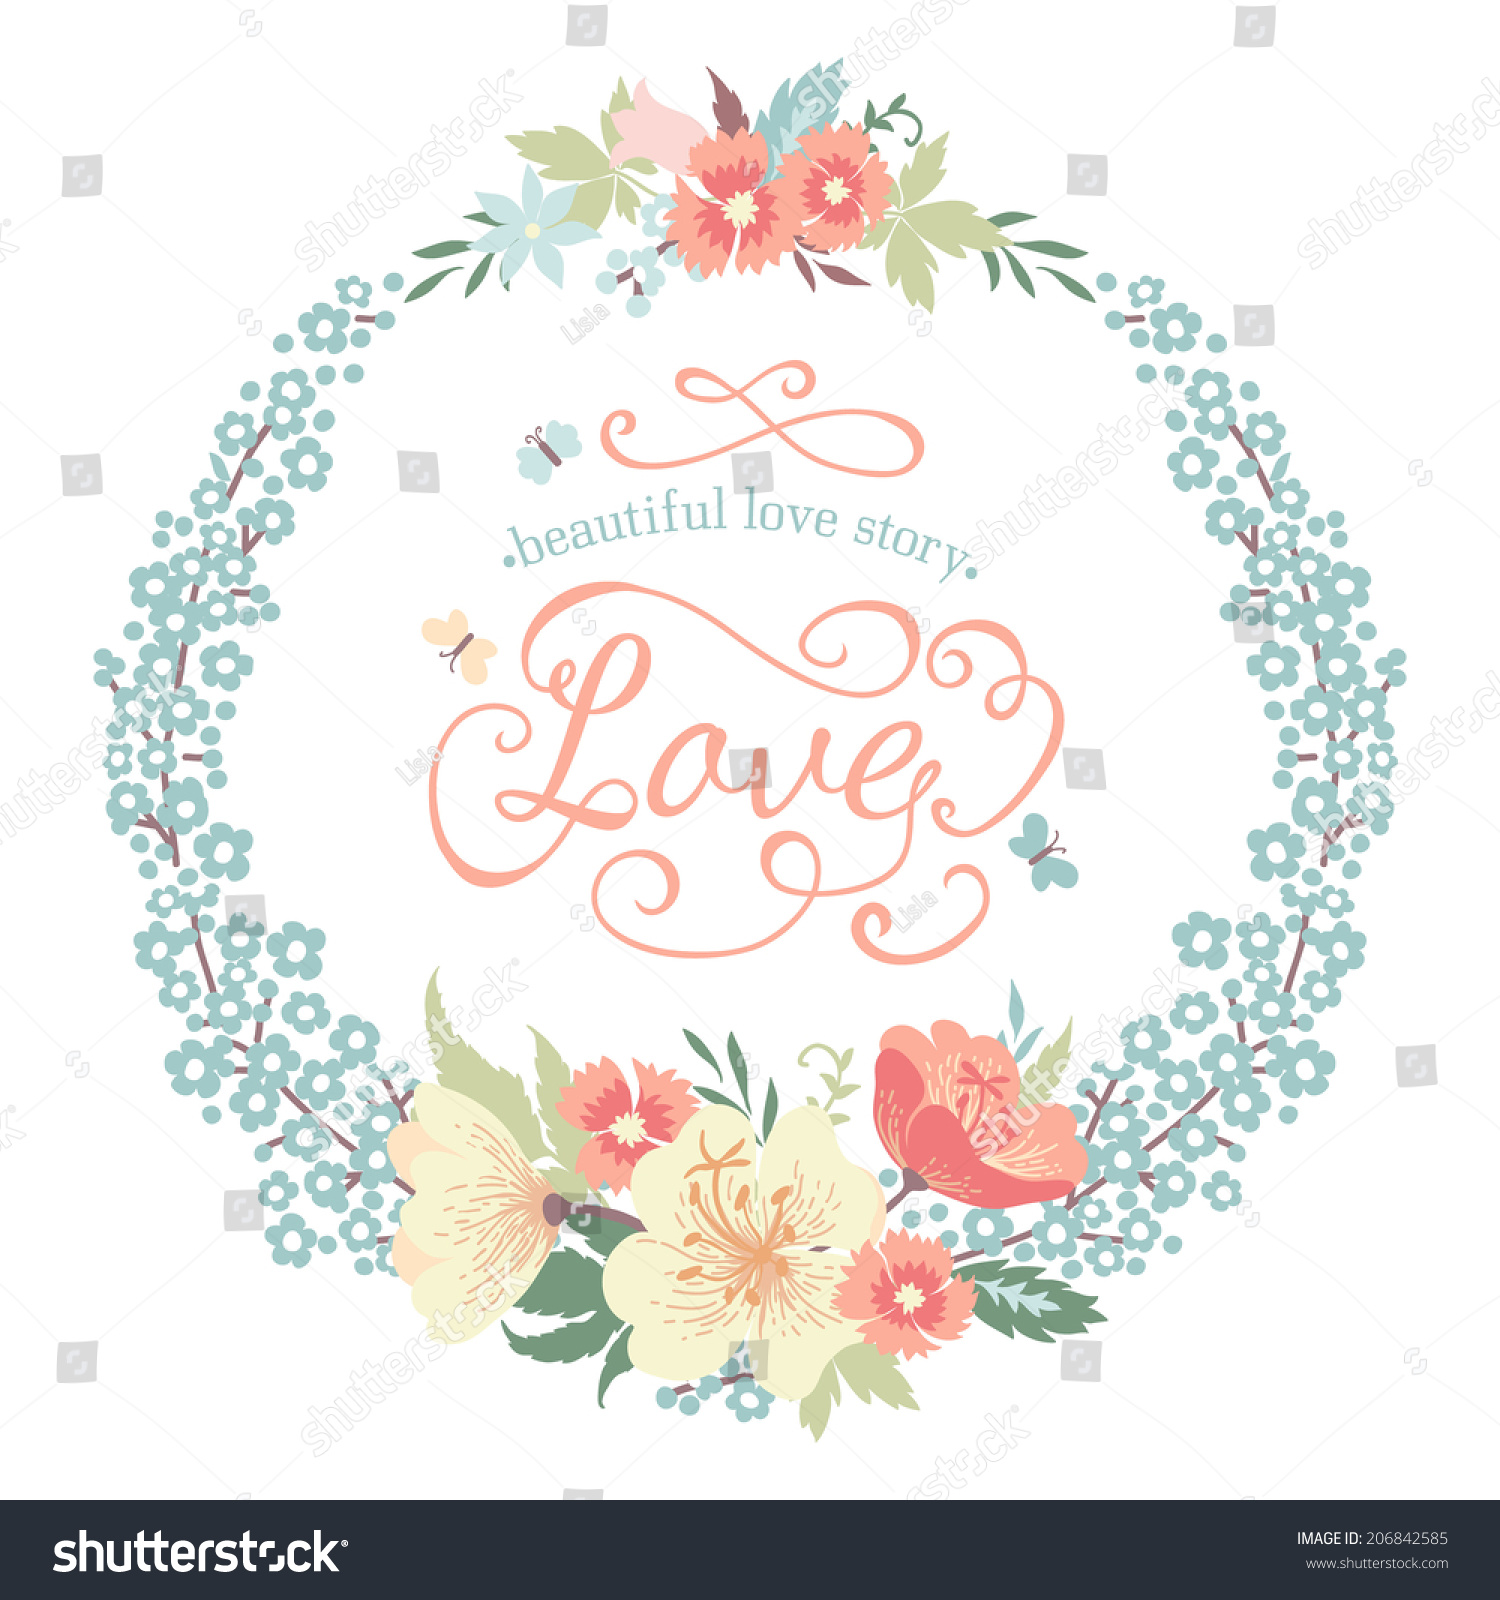 Vector round frame with pink flowers on white background in pastel - Wedding Round Floral Frame With Flowers In Pastel Colors Vector Illustration